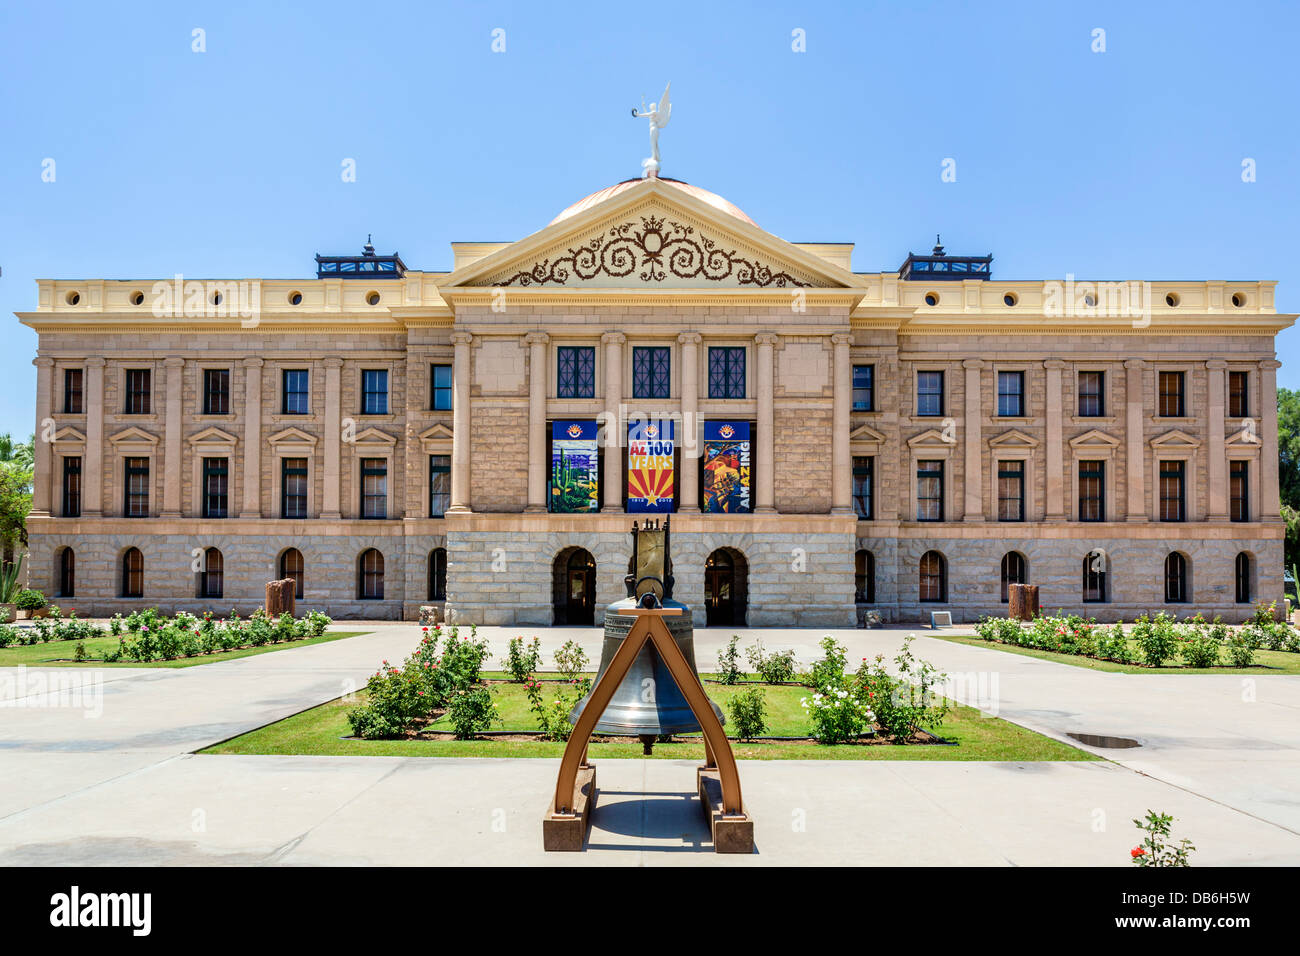 The Arizona State Capitol building, Phoenix, Arizona, USA - Stock Image